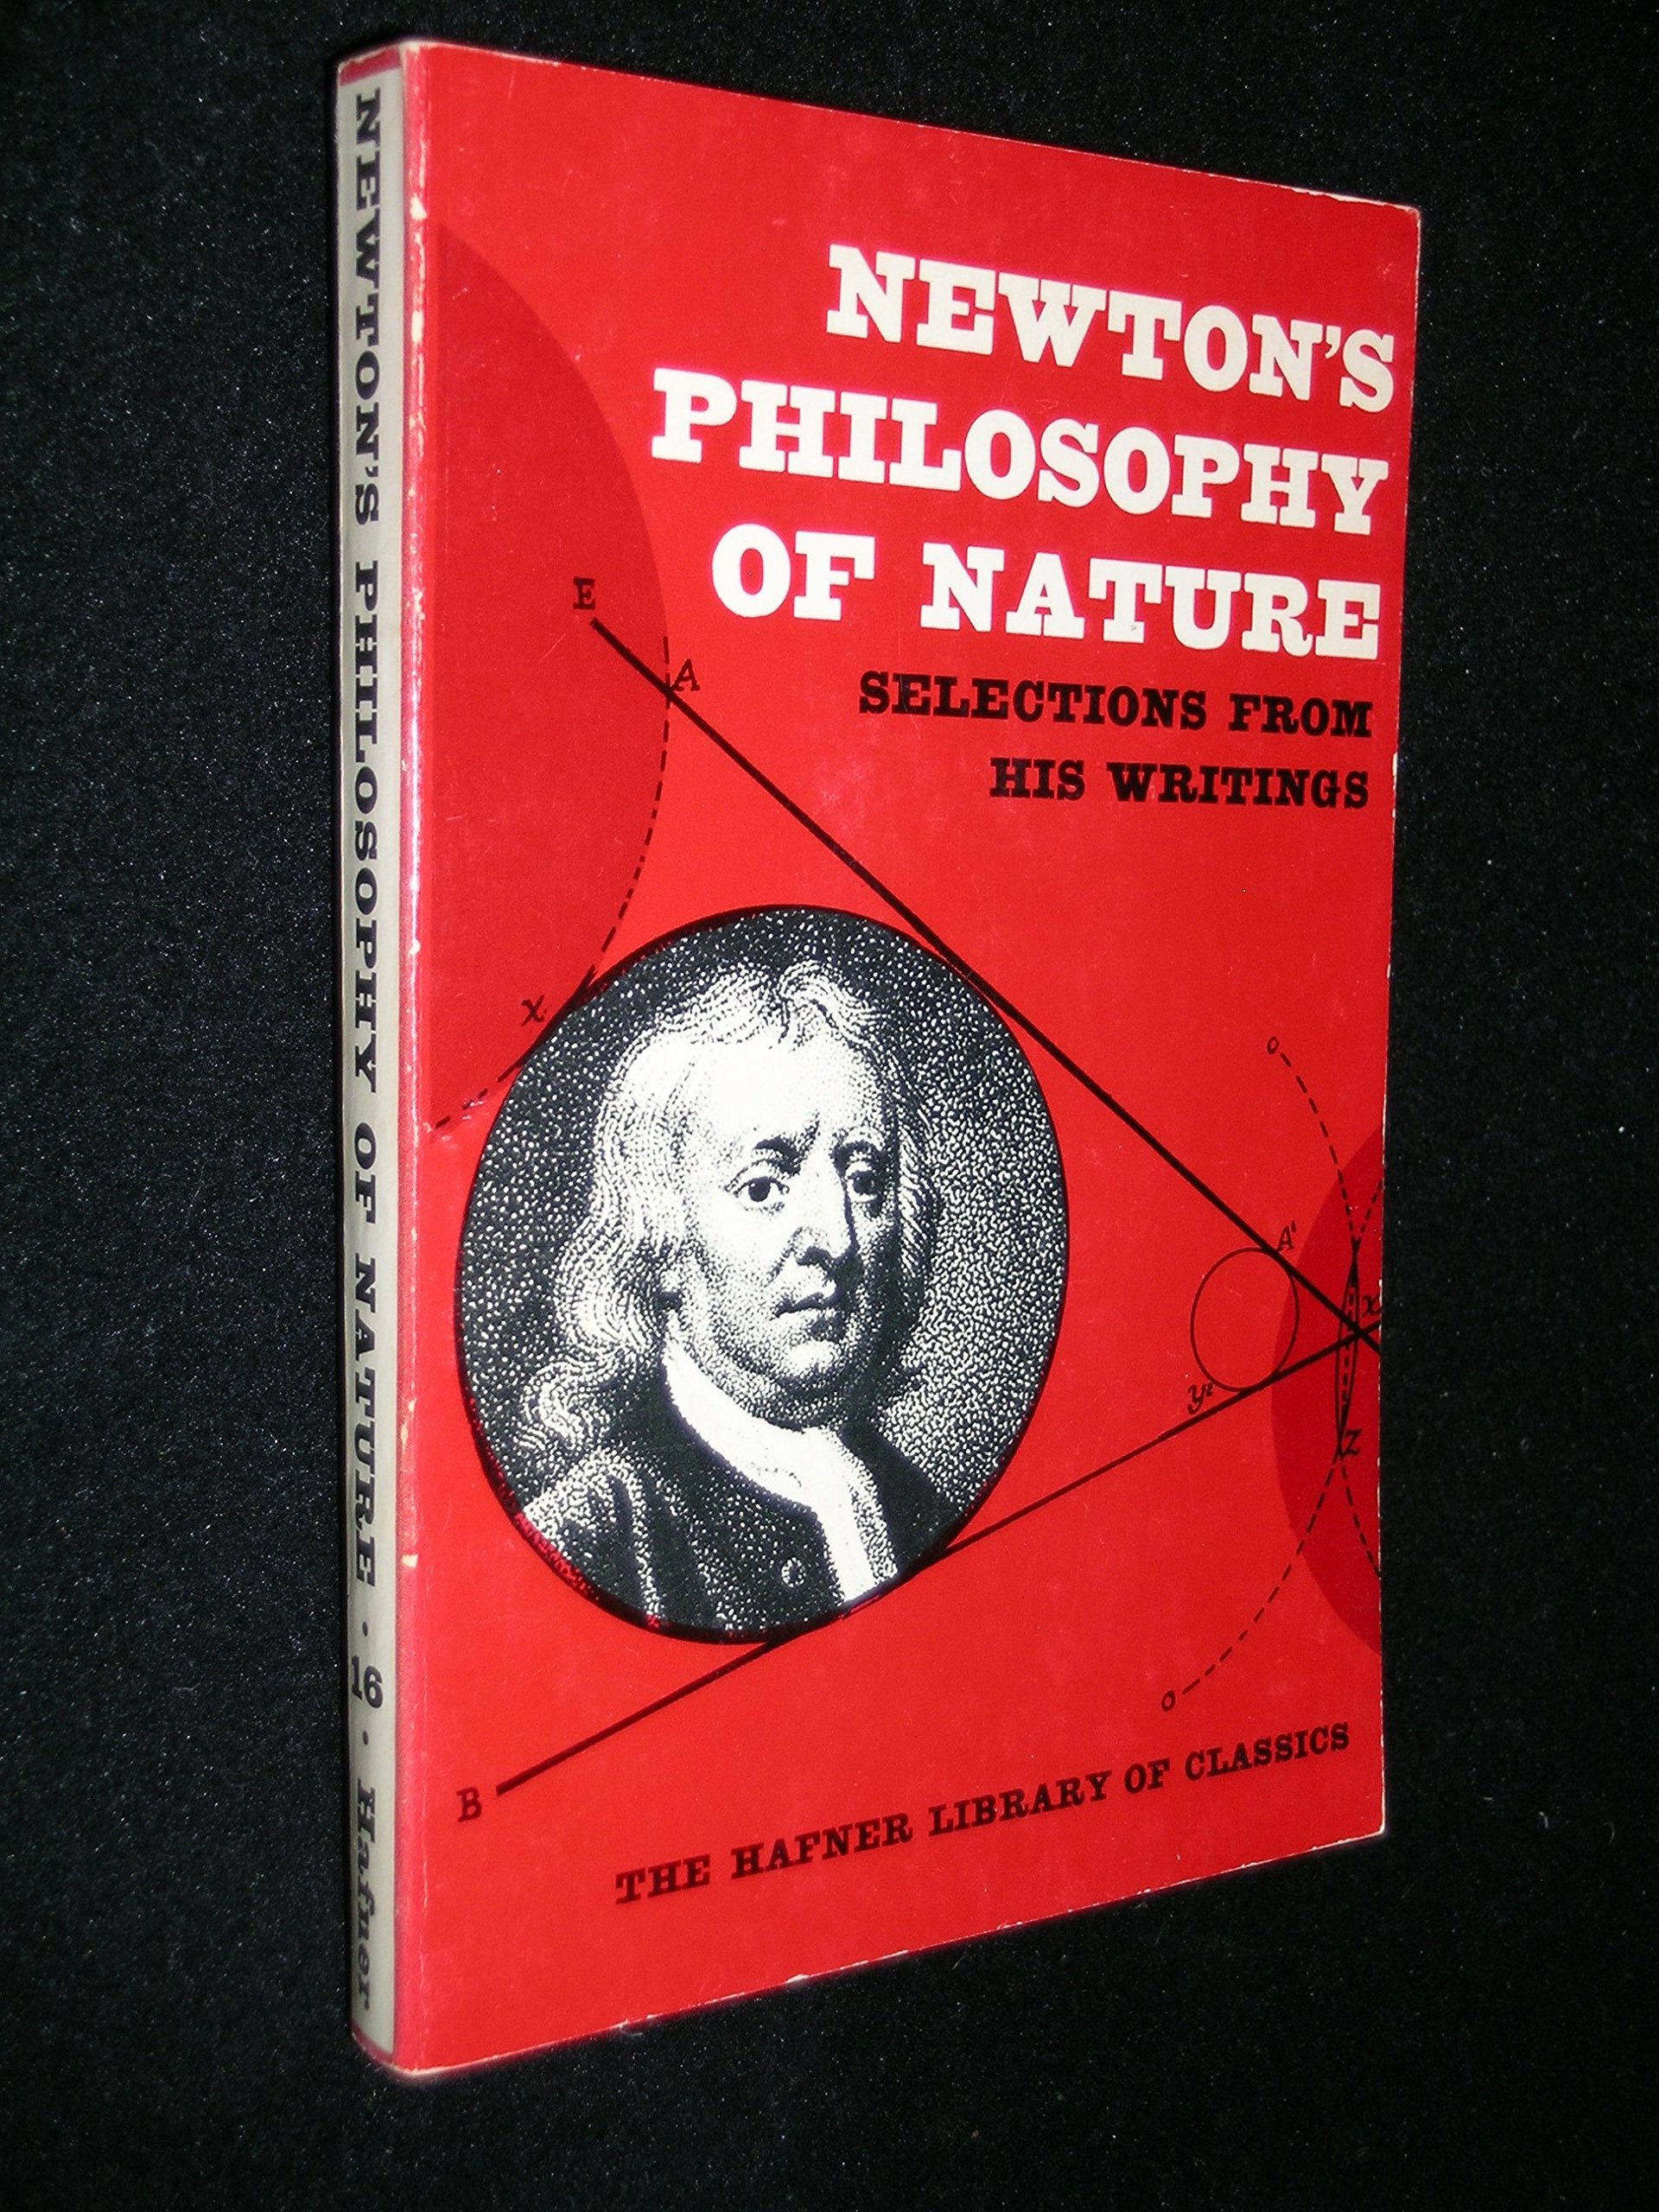 Newton's Philosophy of Nature: Selections from His Writings (Hafner Library  of Classics, #7): Isaac Newton, HS Thayer, Jr John H Randall: Amazon.com:  Books